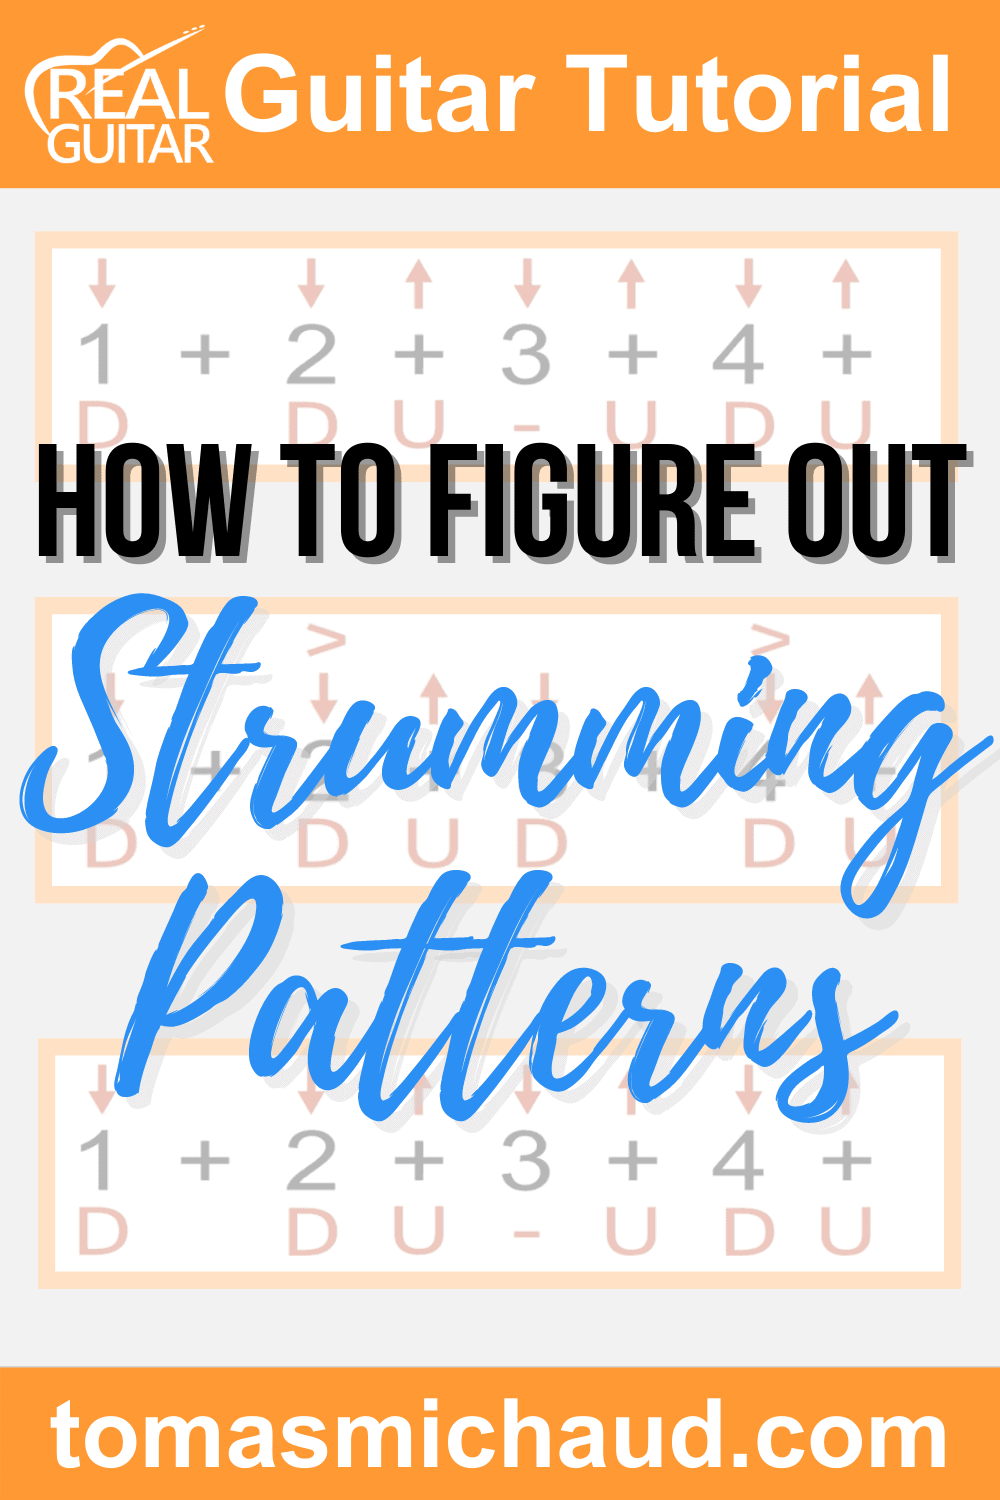 How To Figure Out Strumming Patterns